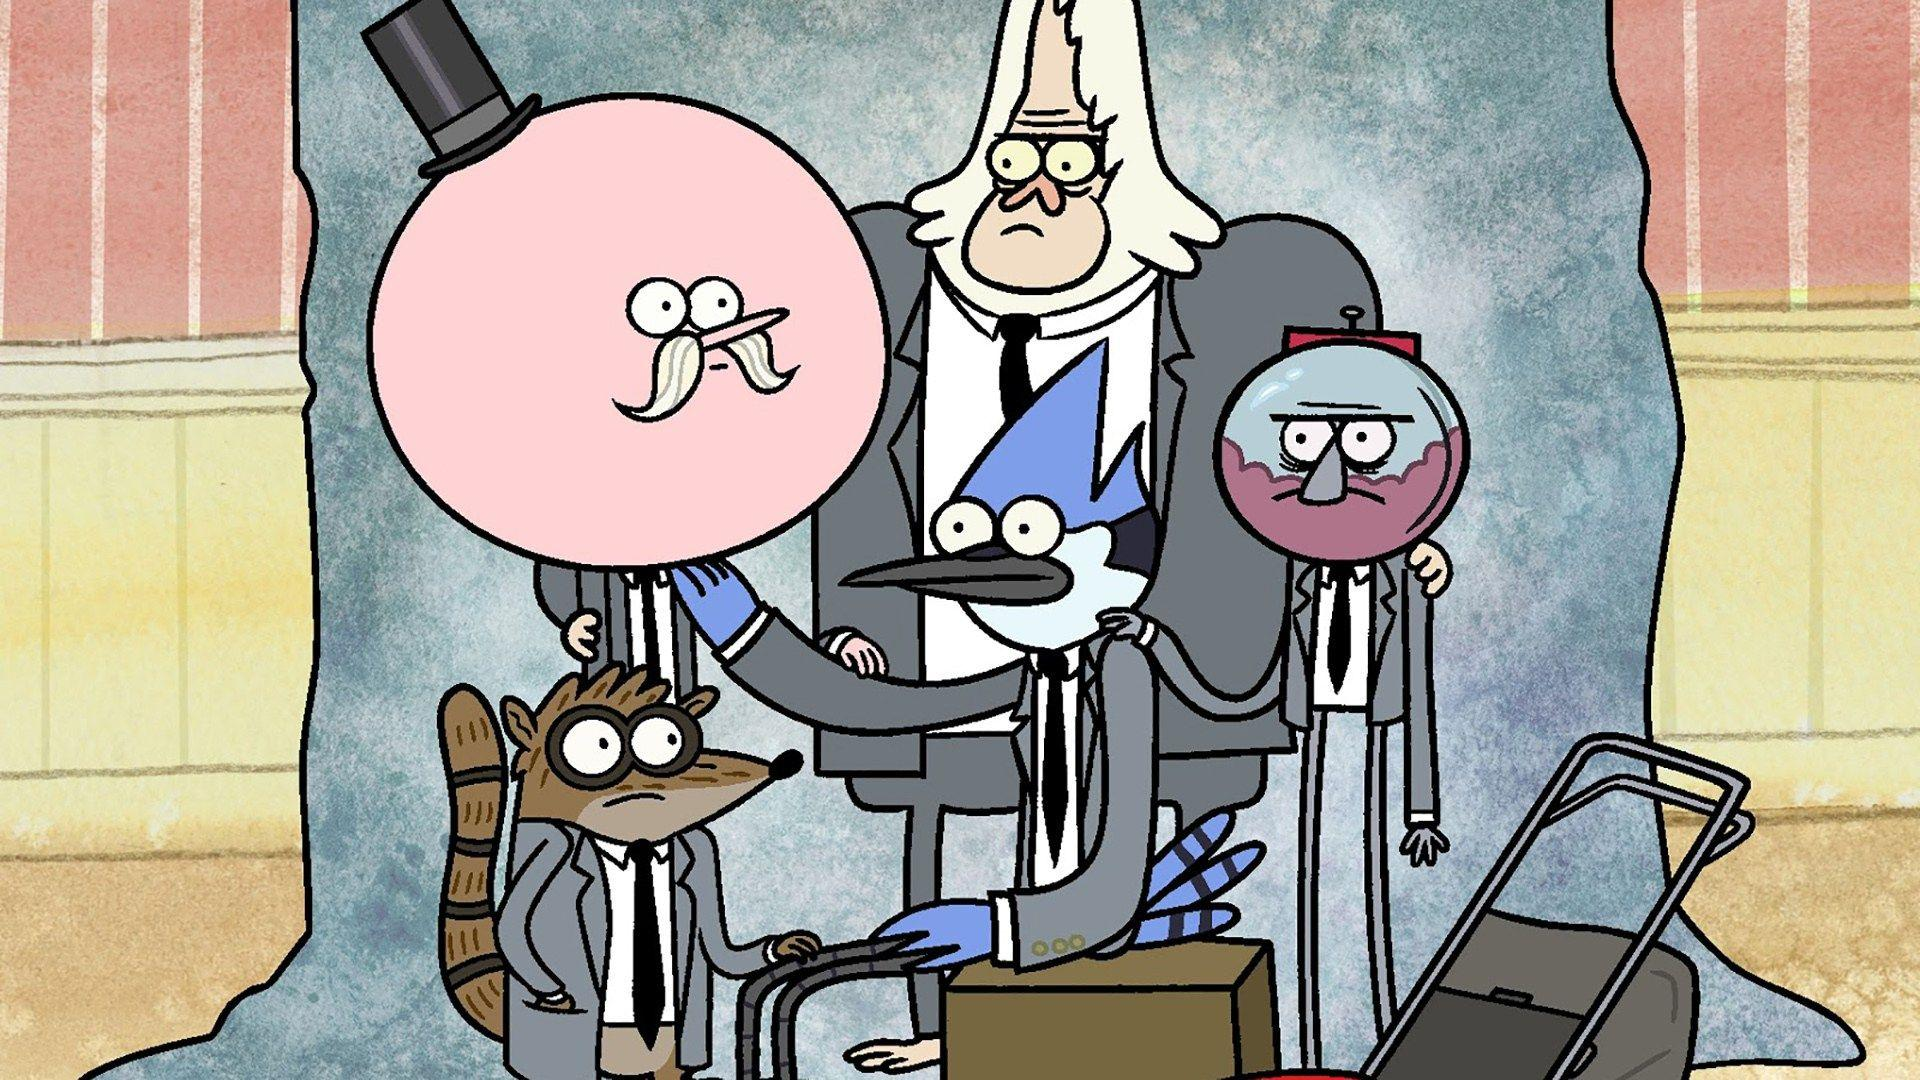 Images of Regular Show Dailymotion - #rock-cafe